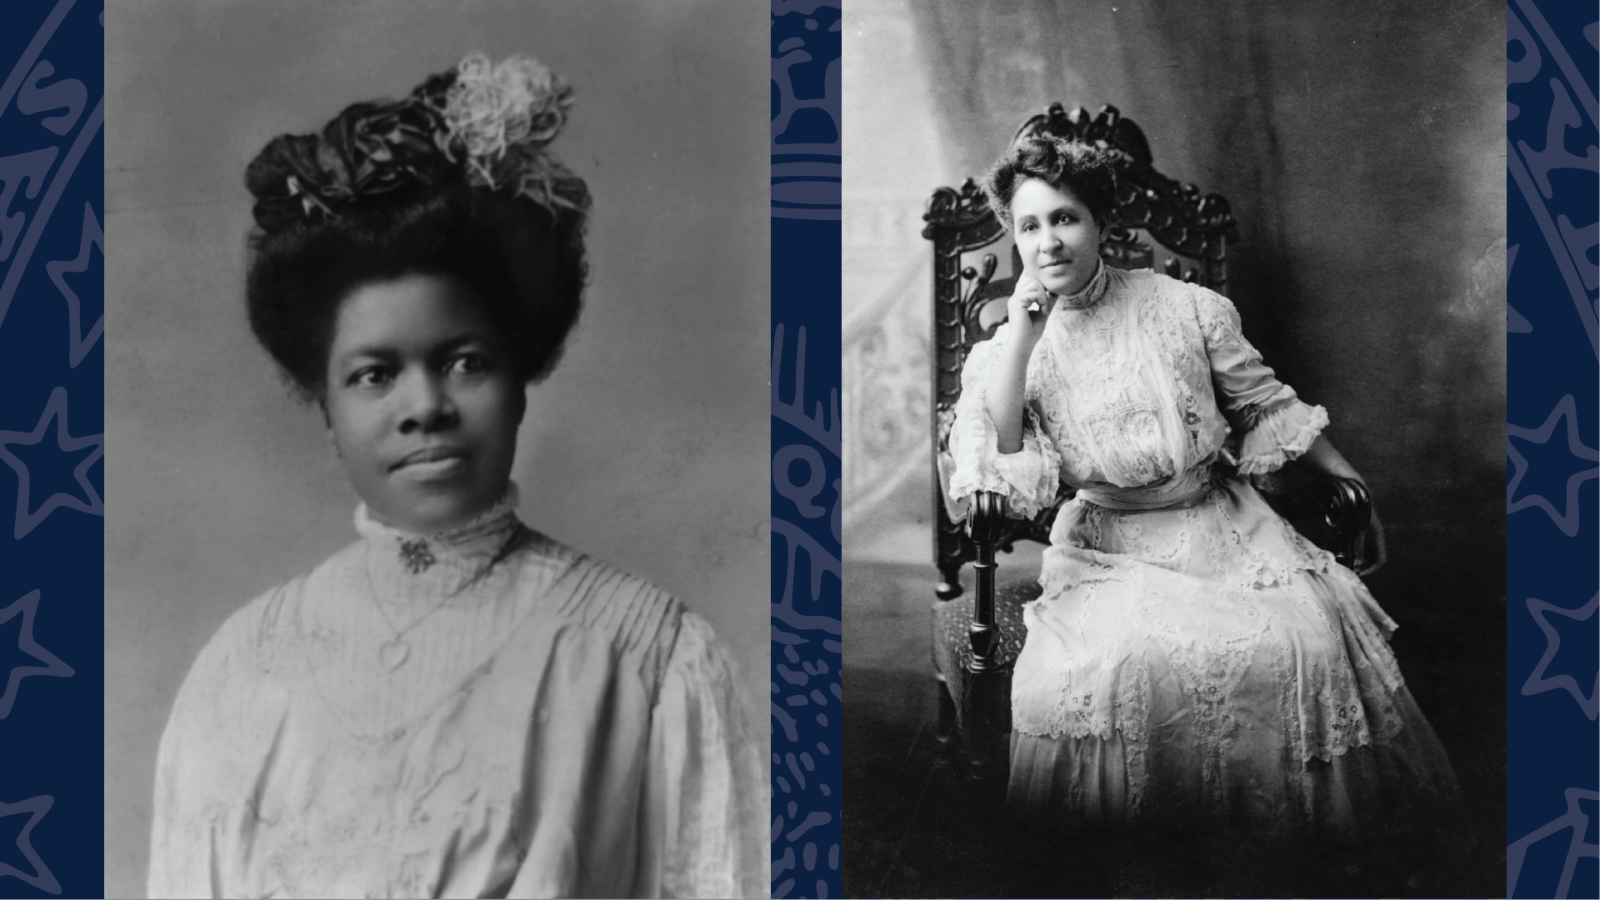 black and white photos of women from the early 1900s